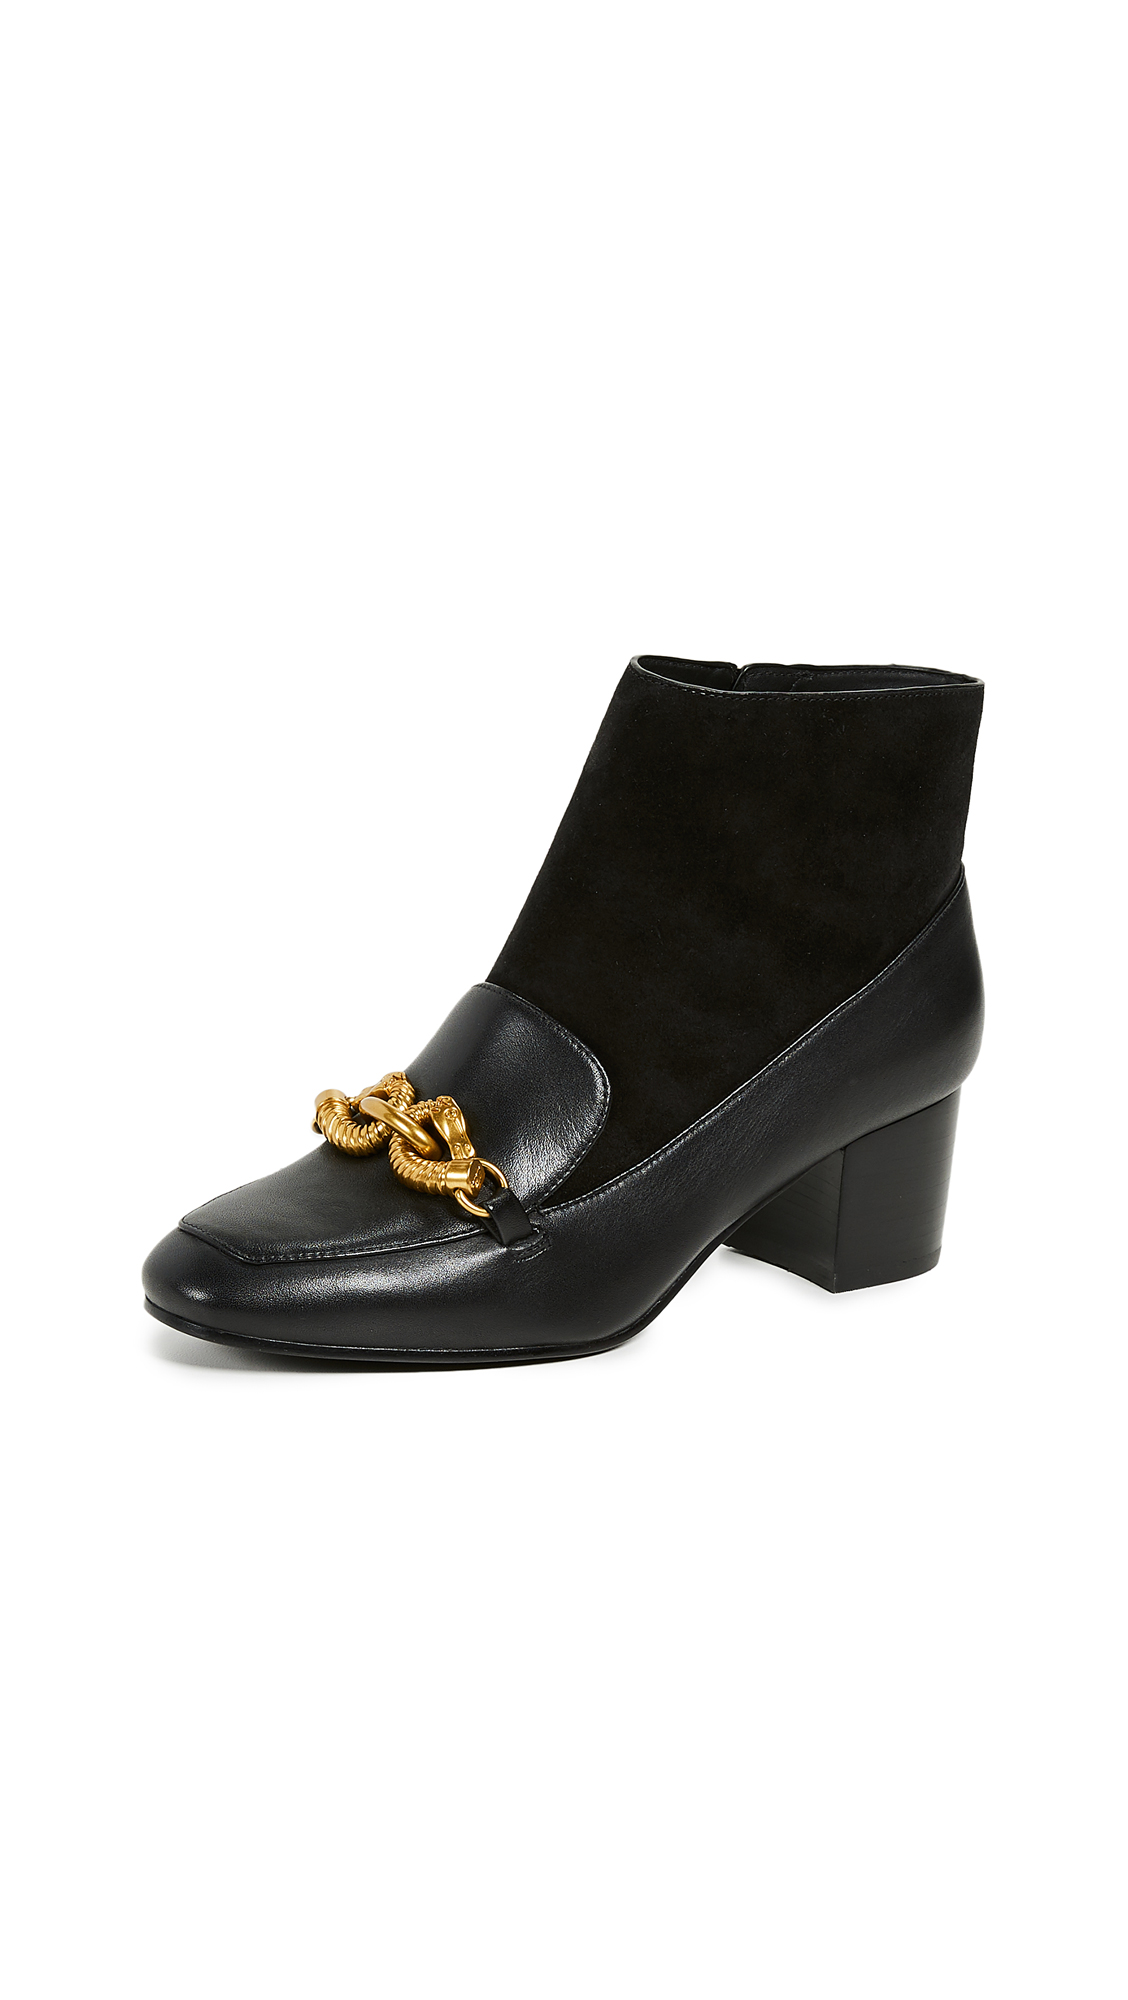 Tory Burch Jessa Booties